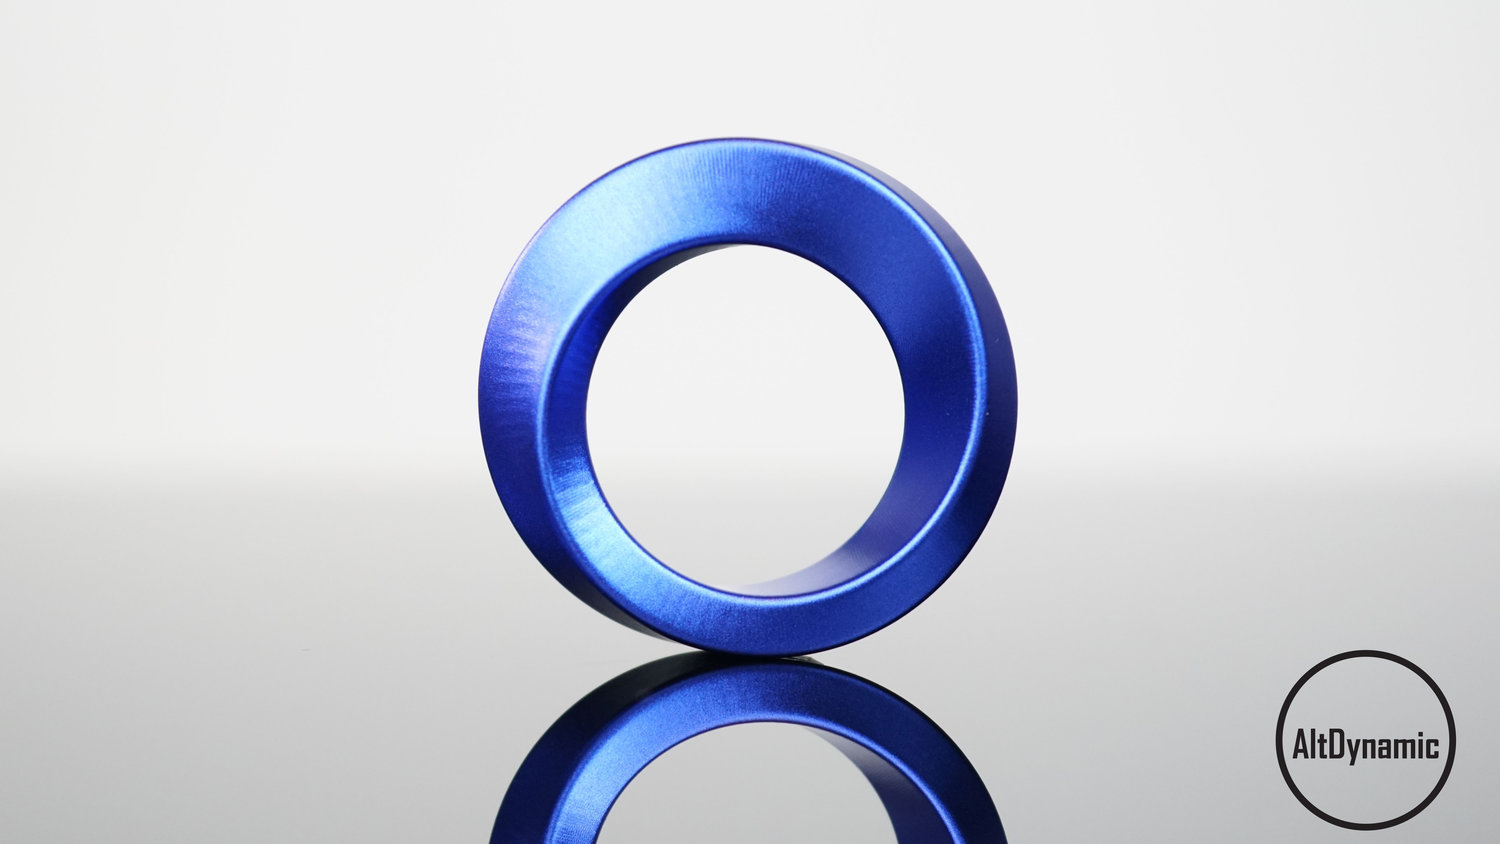 Möbius Strip: A single sided, continuous surface reimagined ...